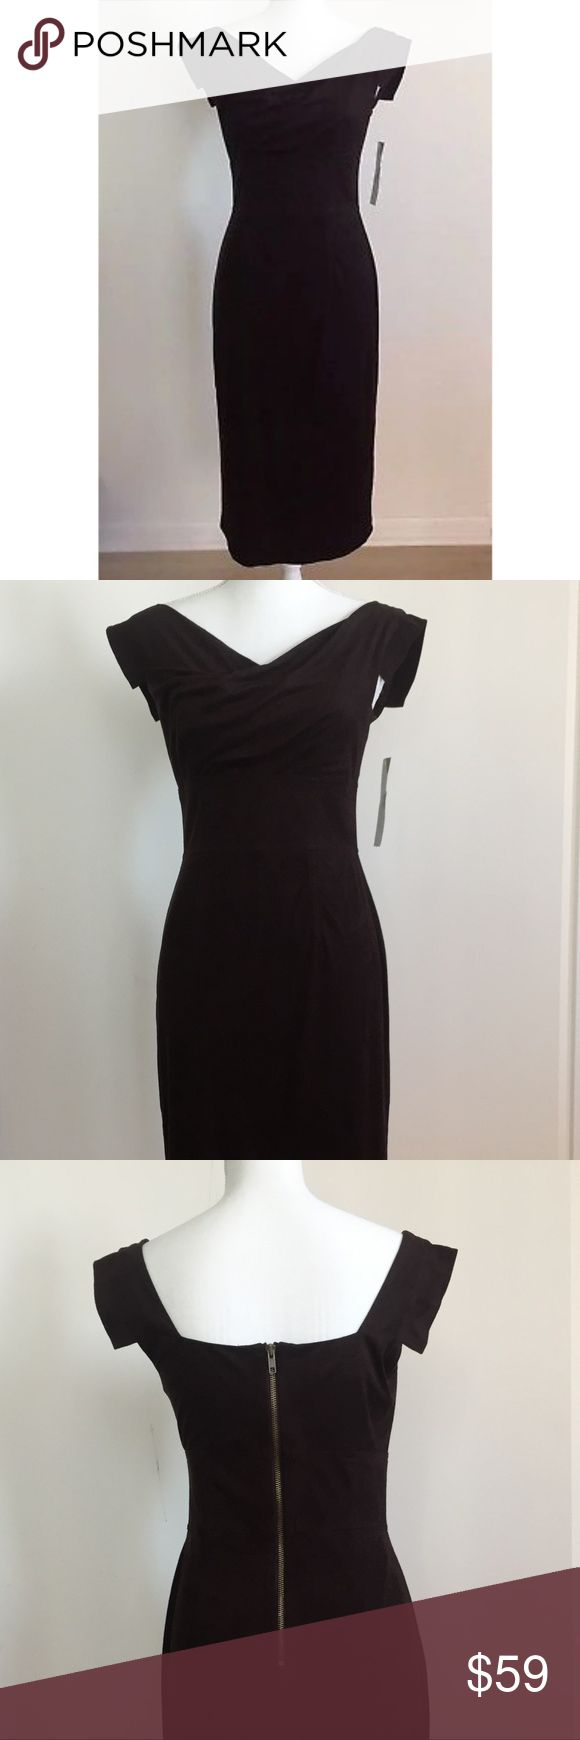 "Maggy-London-Brown-Sheath-Cocktail-Dress-S:4 Maggy London Dark Brown Sheath Cocktail Dress Size:4 $138 100% Polyester, Dry clean. Imported.  Hidden zipper. Fully lined. Length: 42"". Waist: 14"" Flat Across Brand New With Tag. Maggy London Dresses Midi"